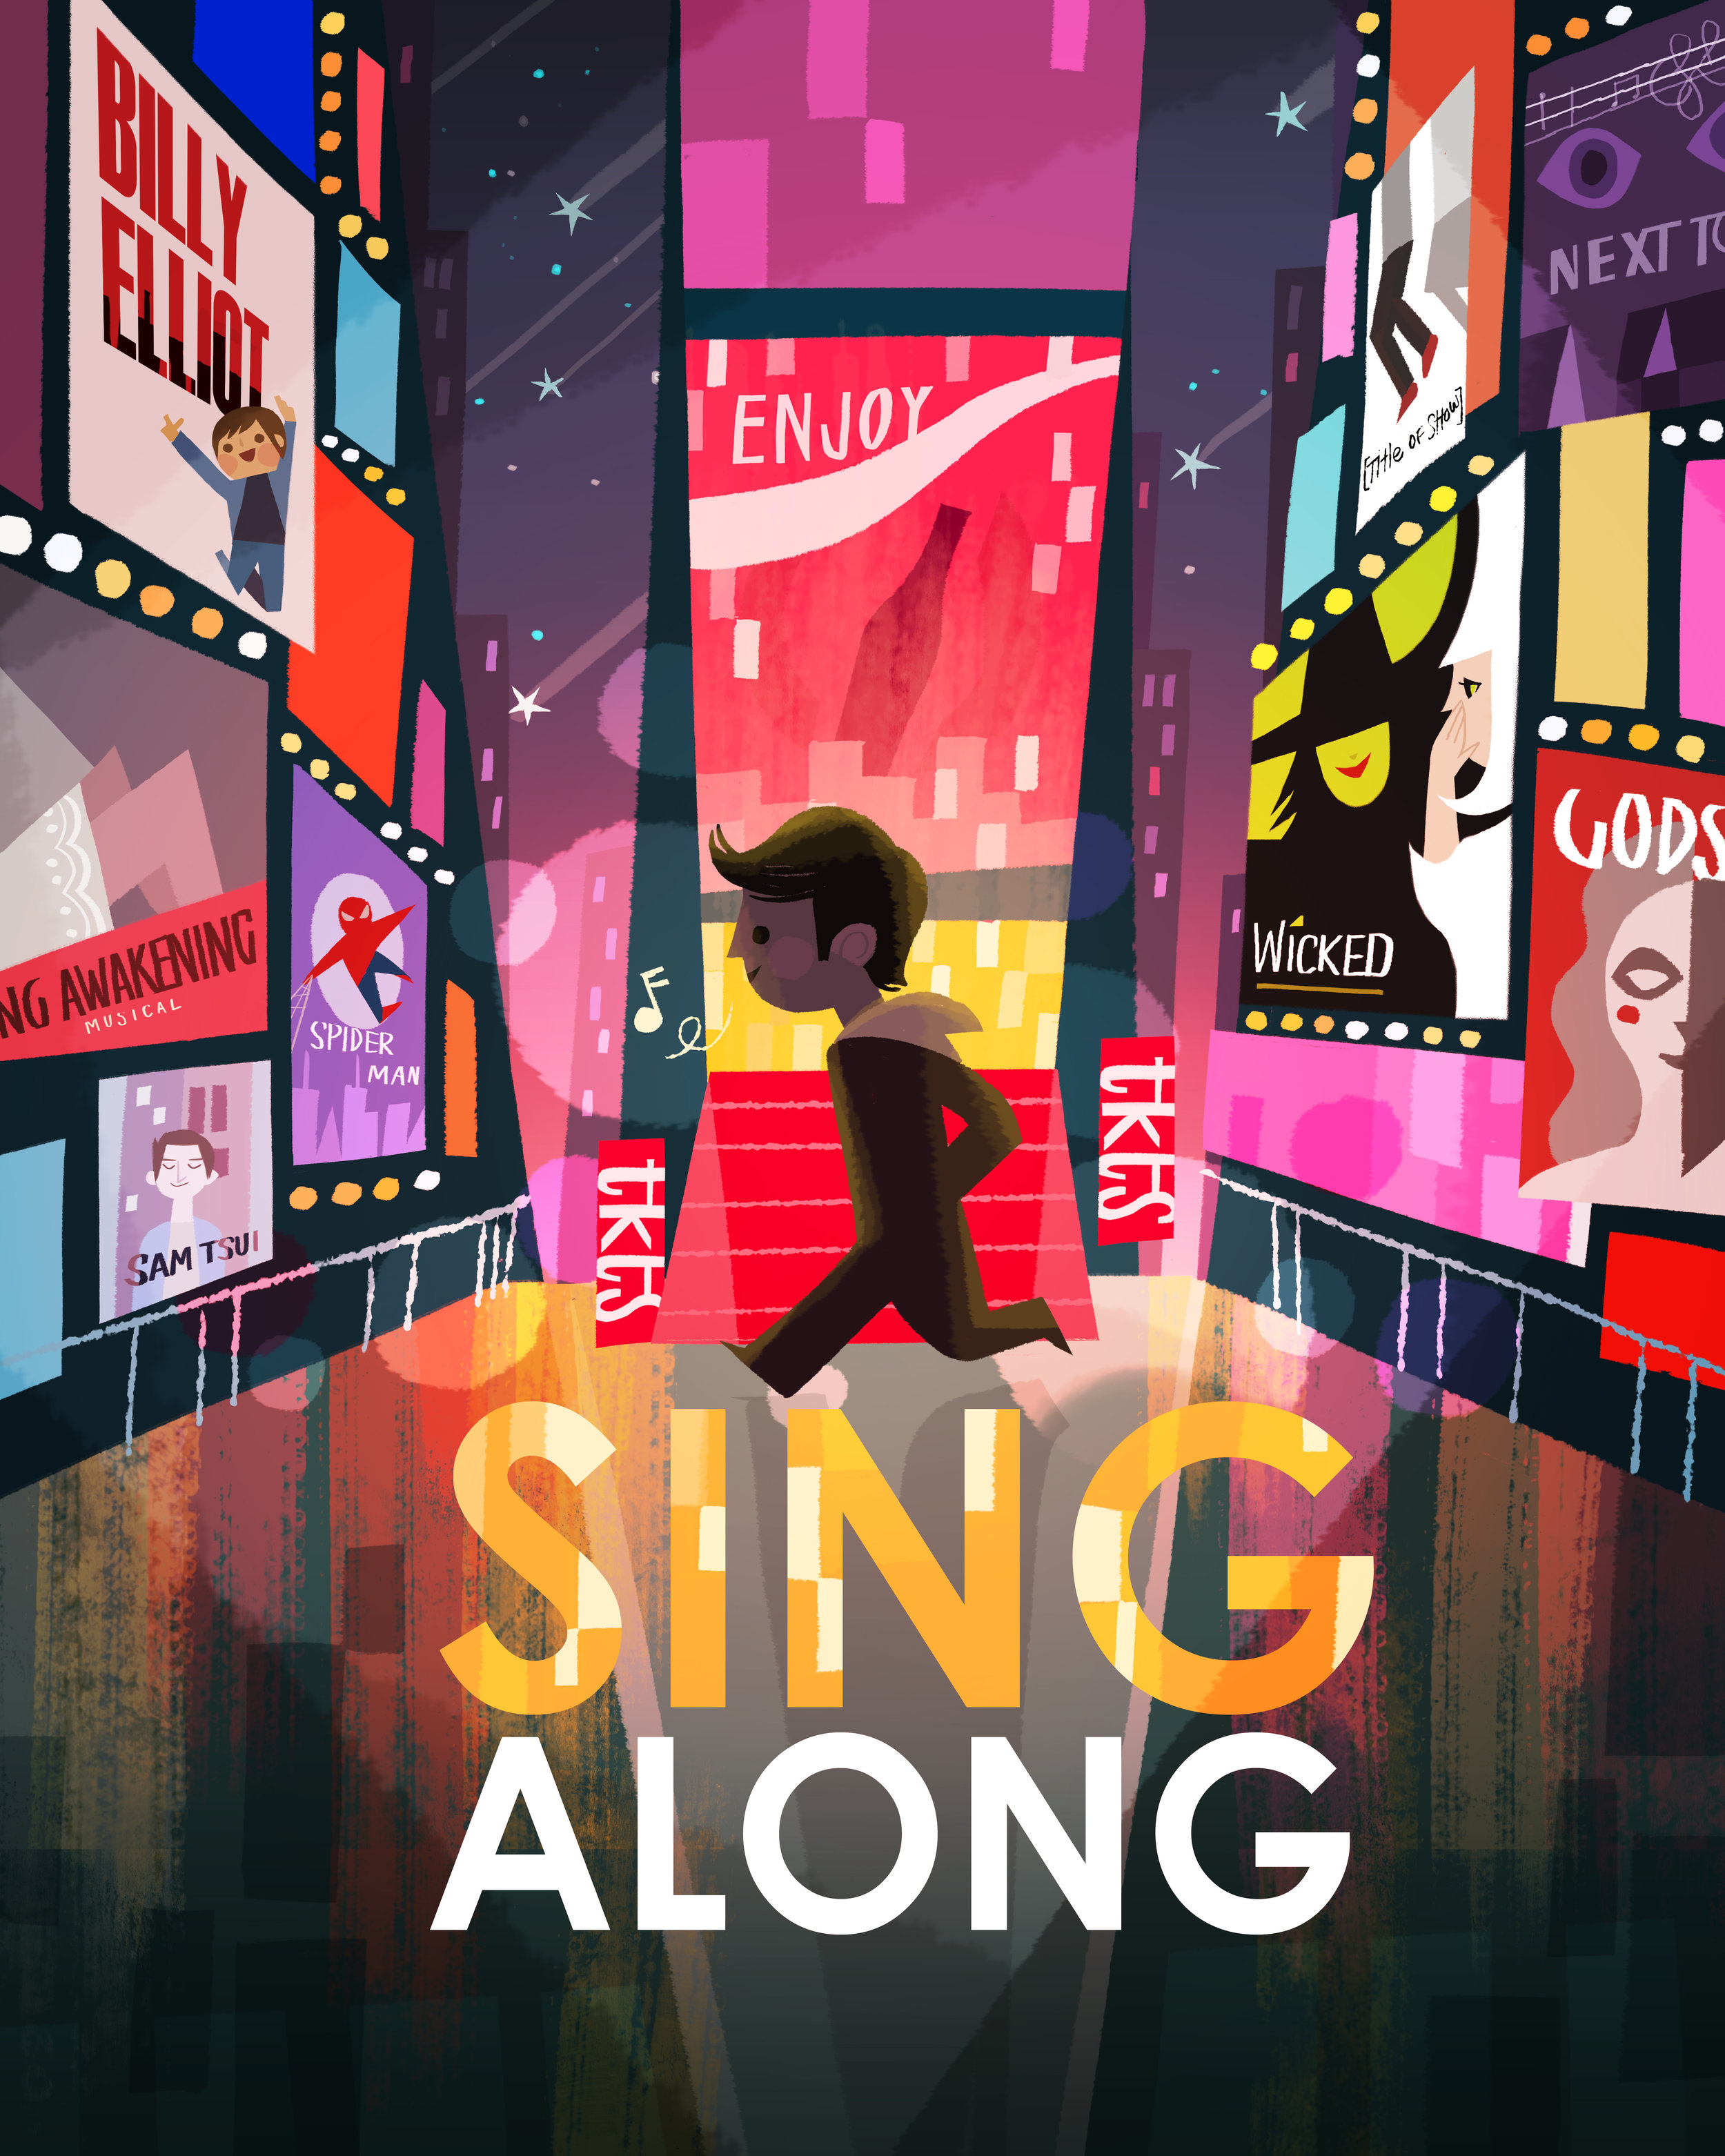 Promo poster for Sing Along the musical